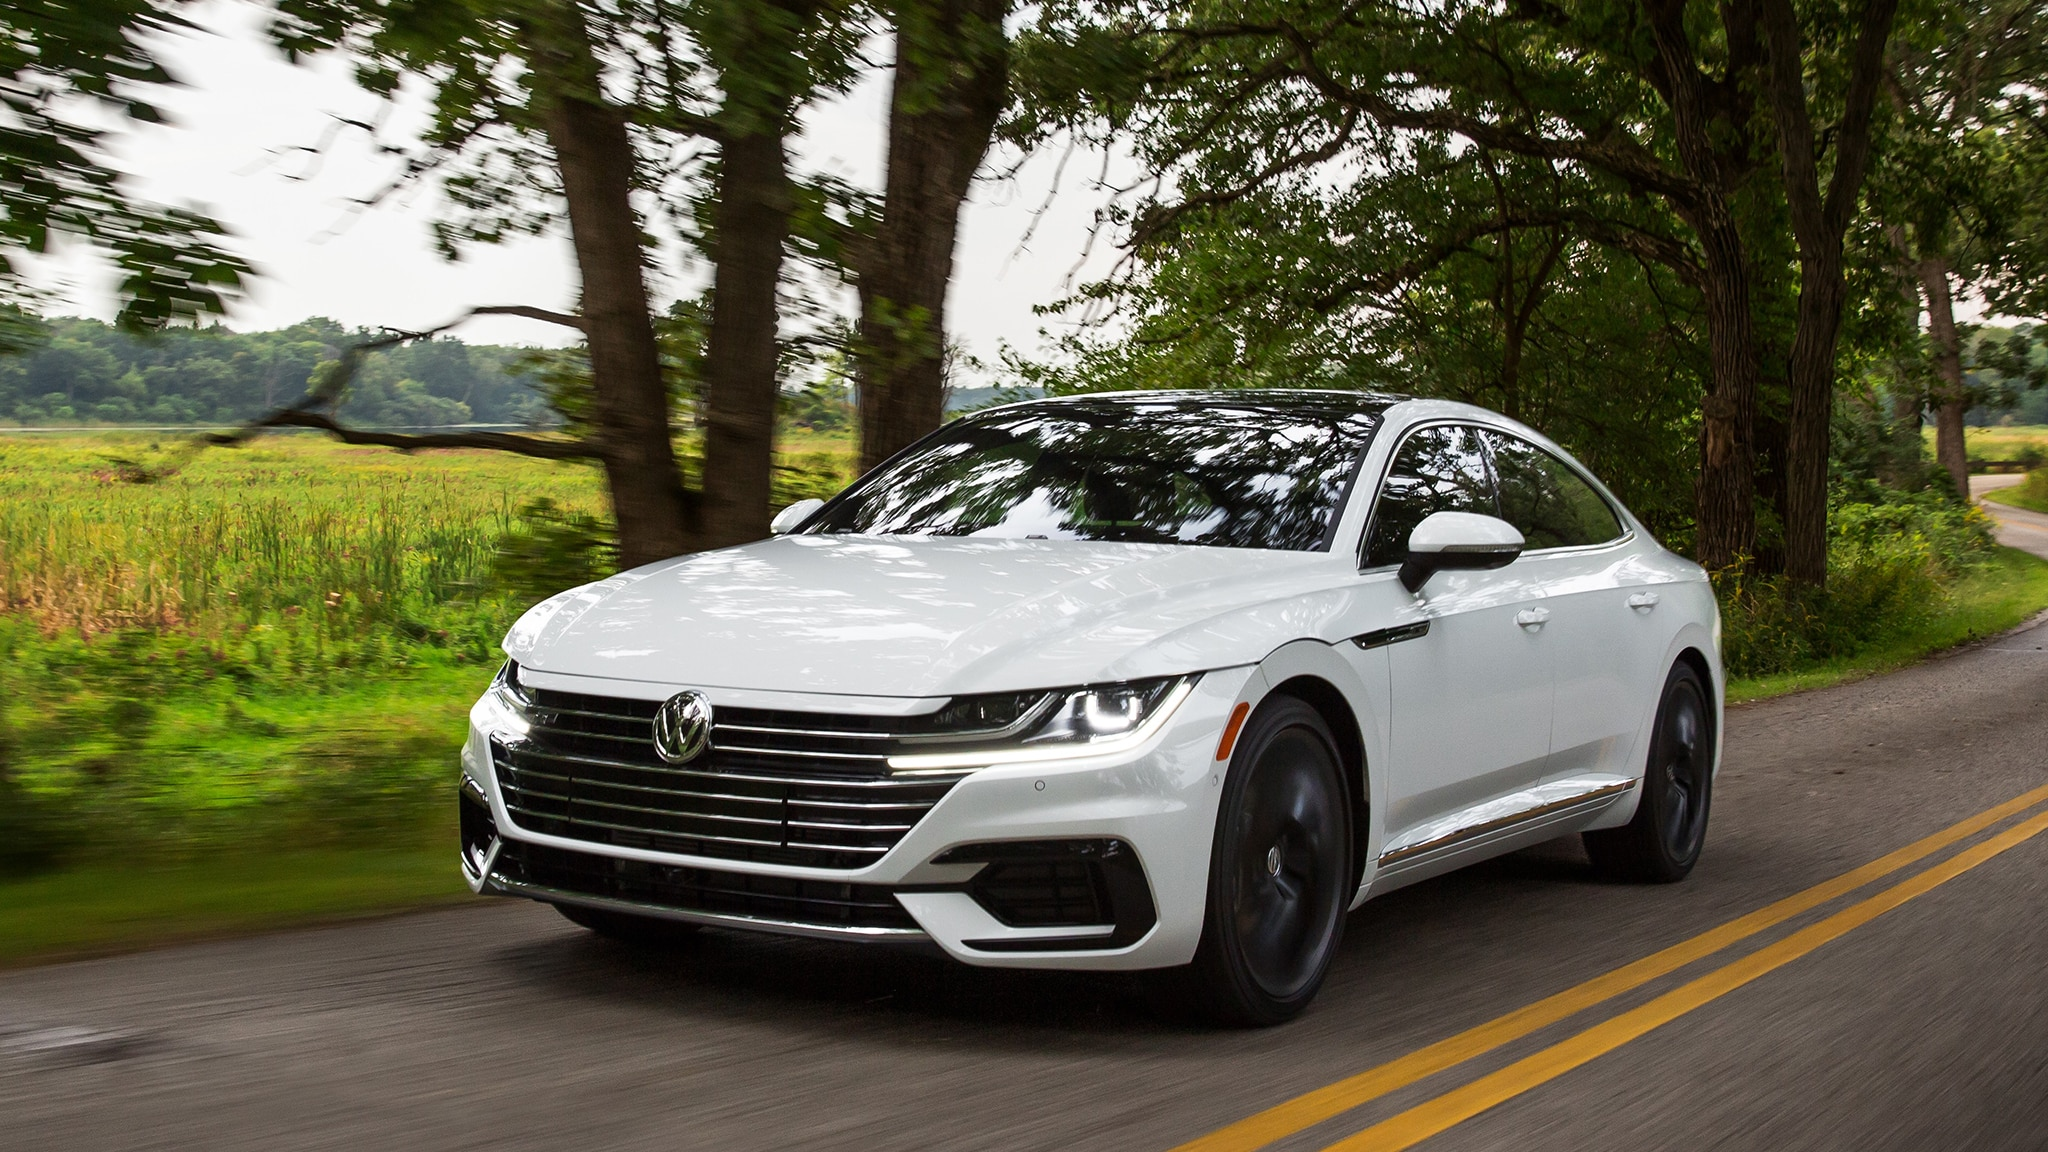 vw arteon a road trip through germany in a swoopy sedan. Black Bedroom Furniture Sets. Home Design Ideas